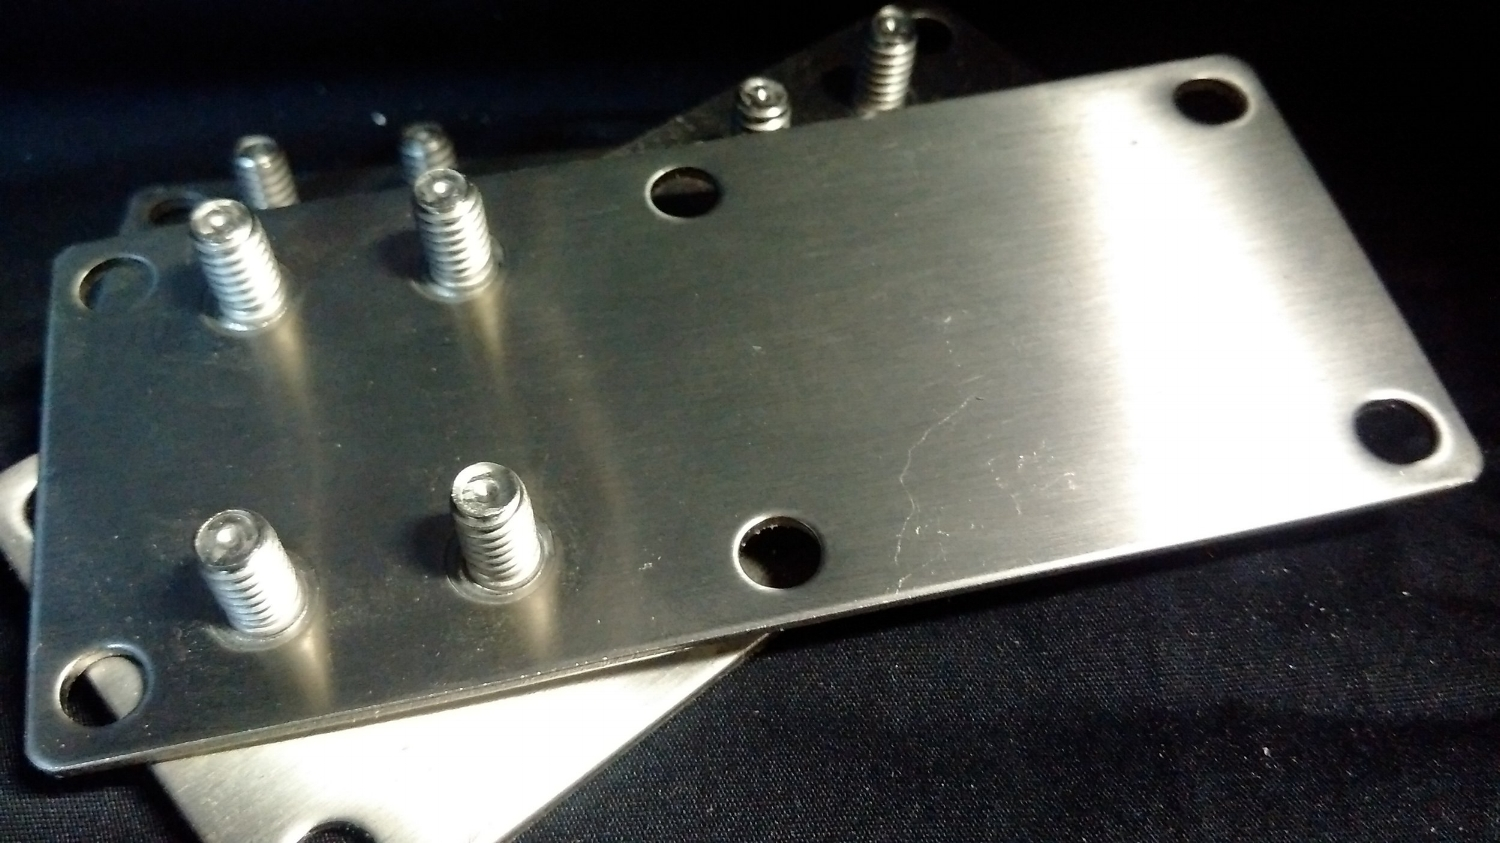 S.S. Top bracket adjustment plate